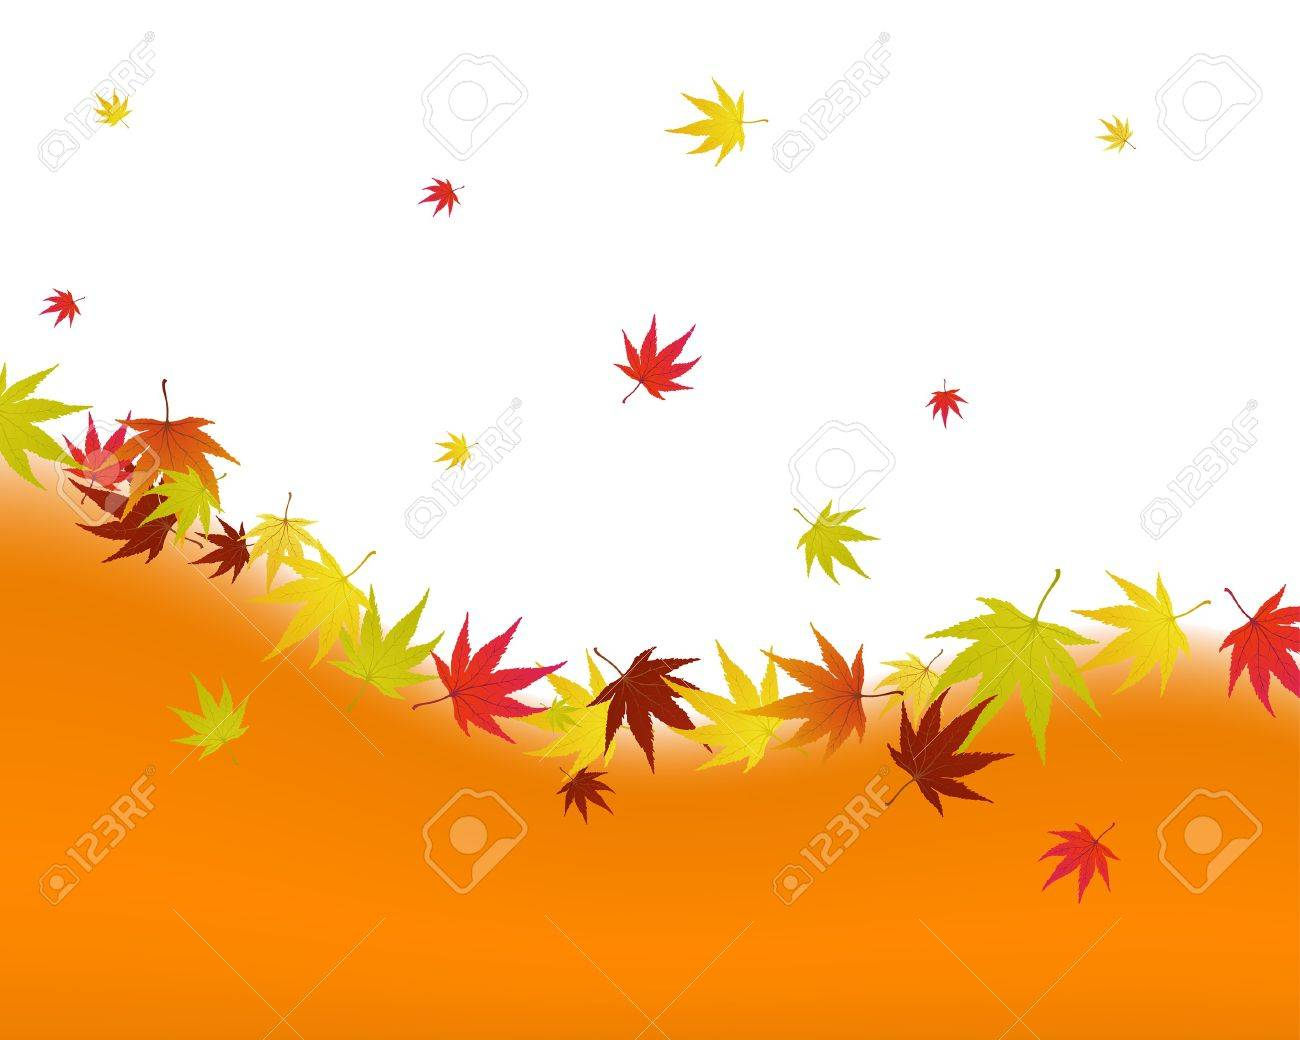 Pattern of autumn  maples leaves. illustration. Stock Vector - 7763682